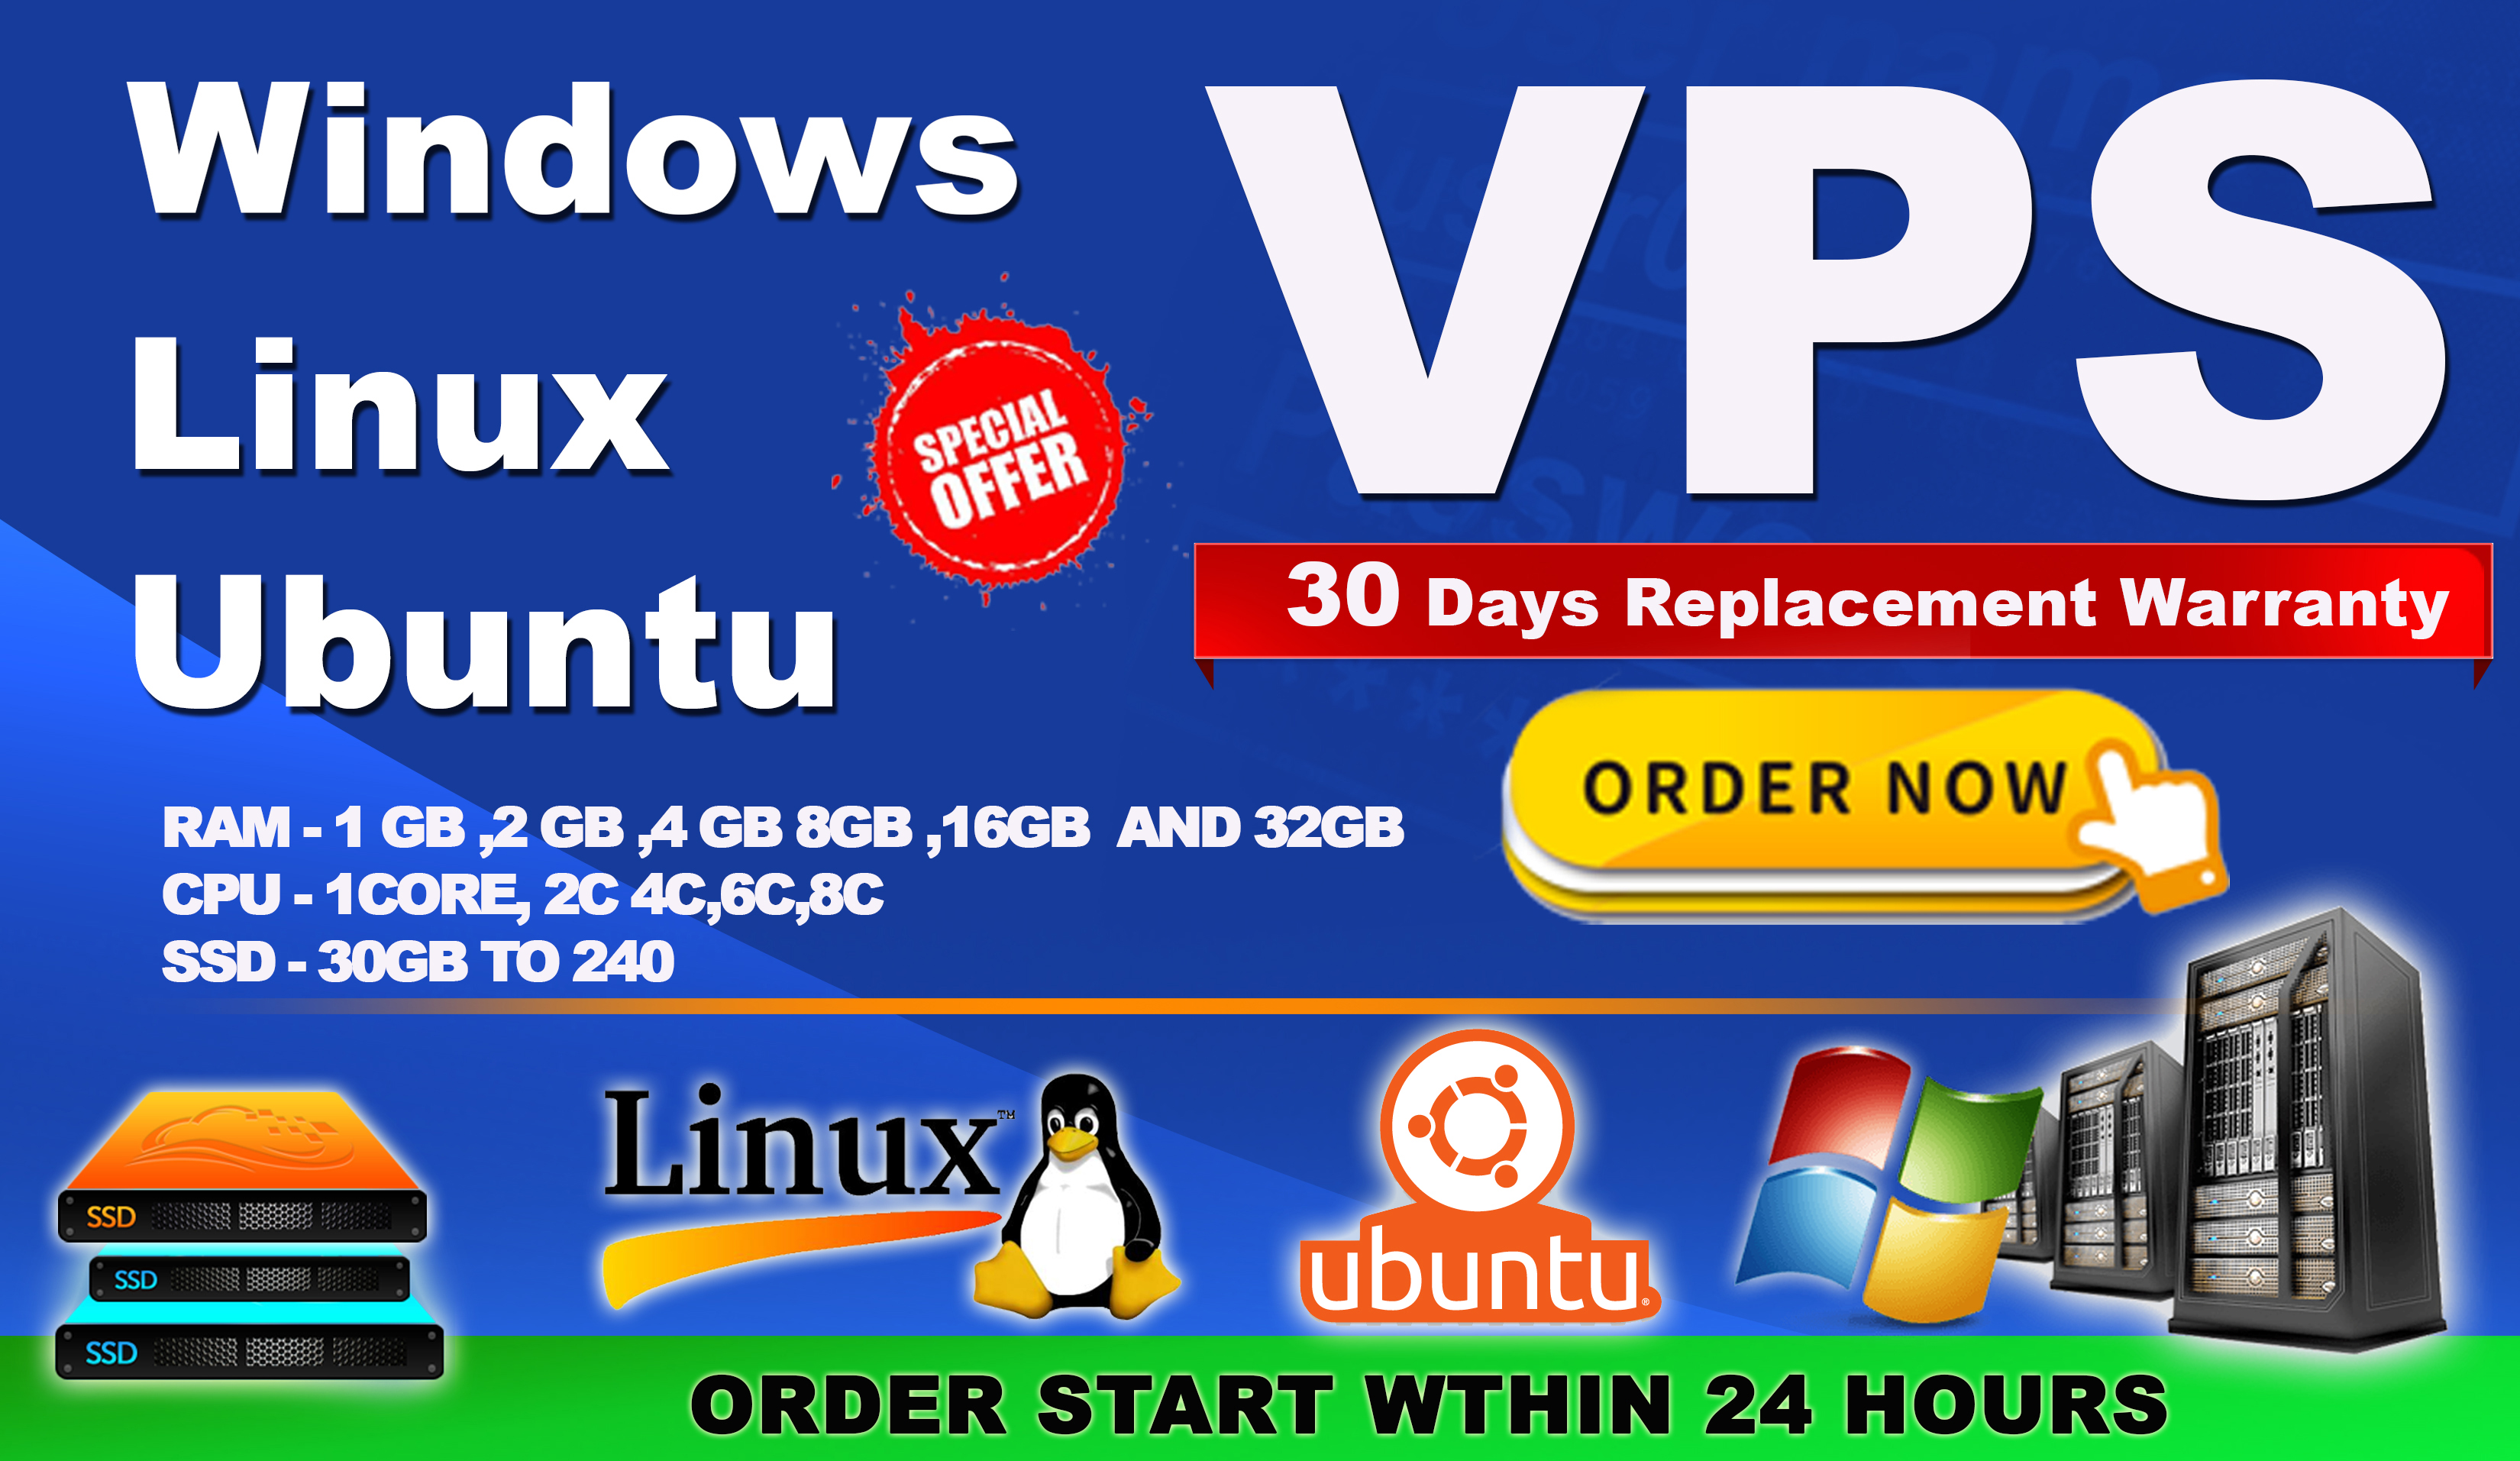 windows rdp vps 2core cpu 4gb Ram with 40GB SSD for 30 days